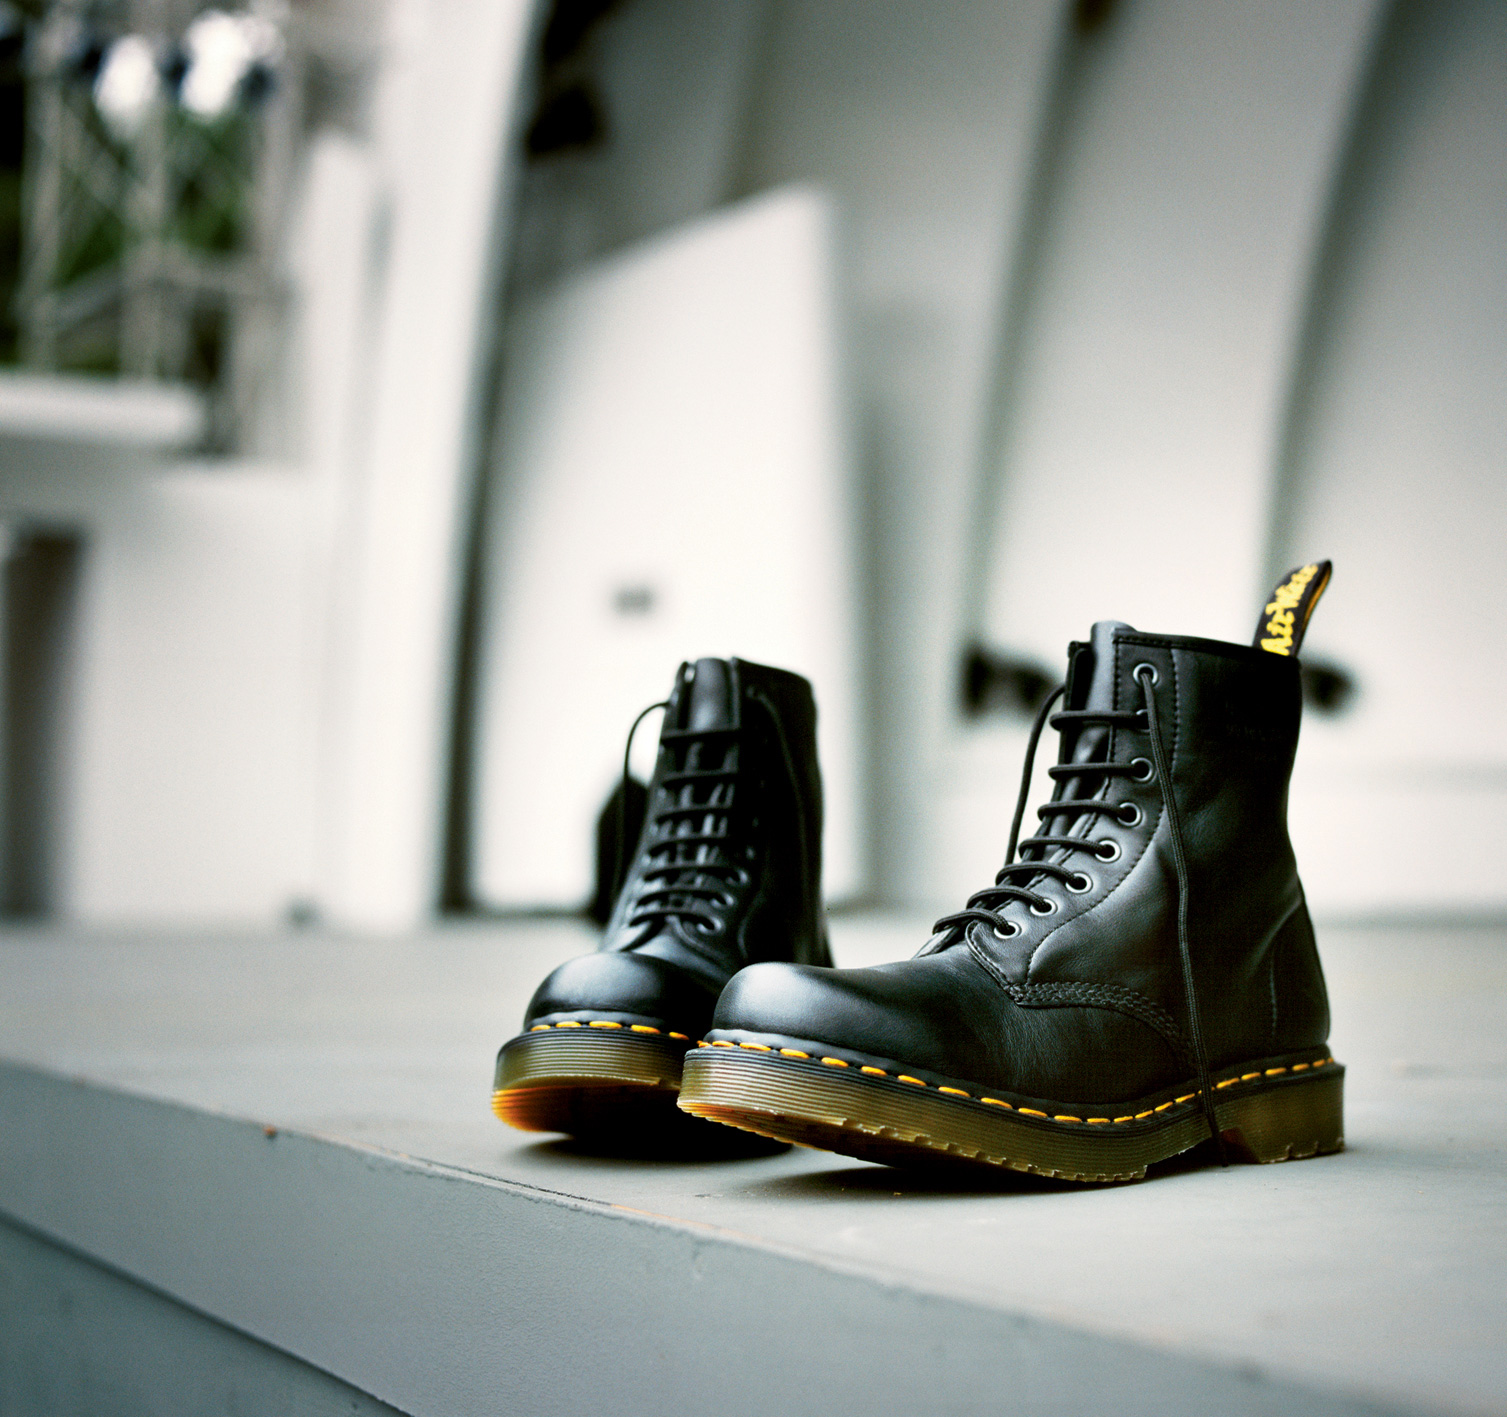 dr martens at Mainline Menswear